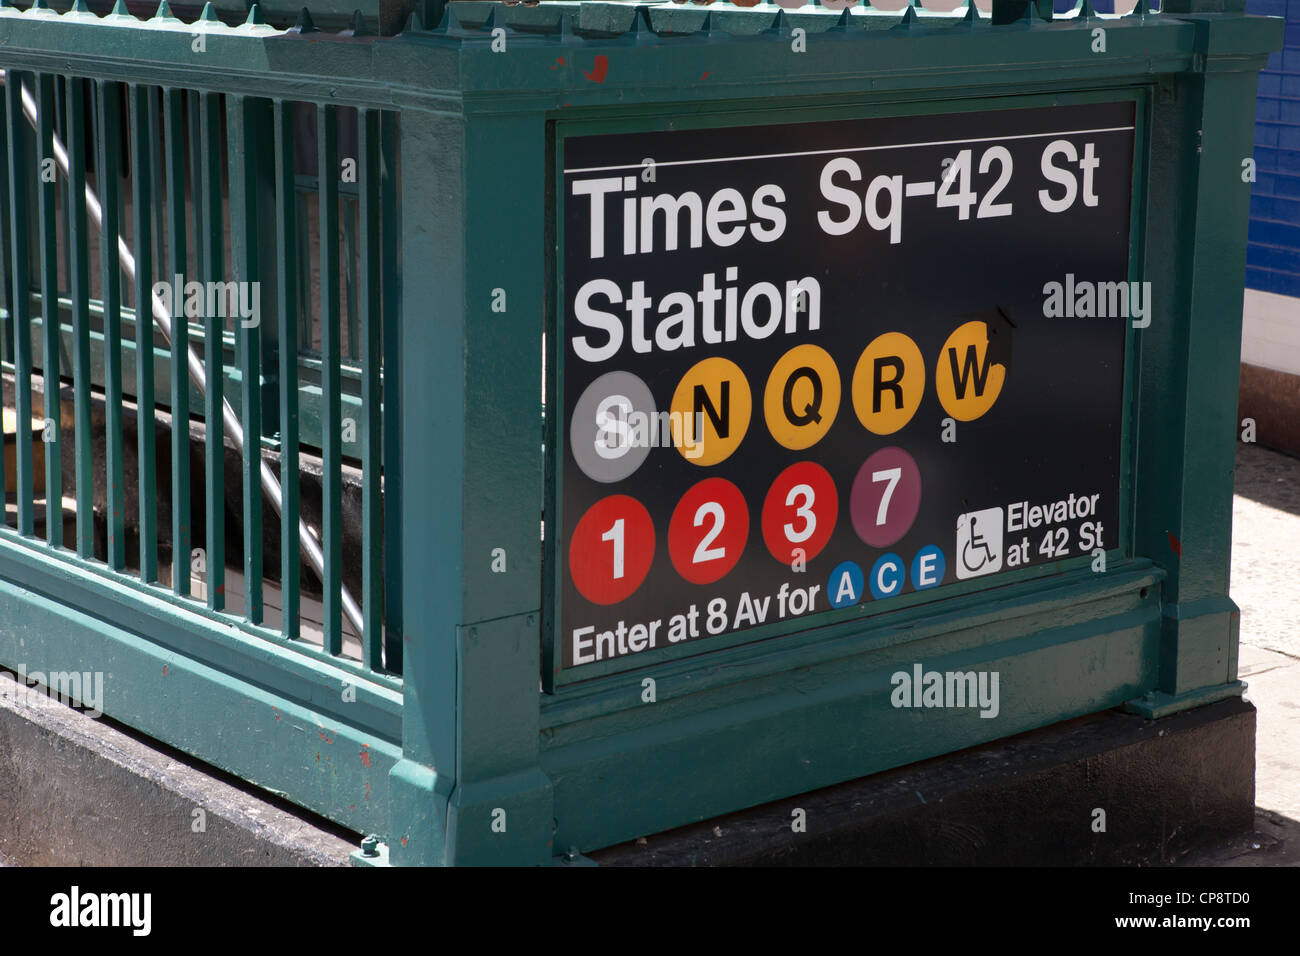 An entrance to the Times Square - 42nd Street subway Station in New York City. - Stock Image